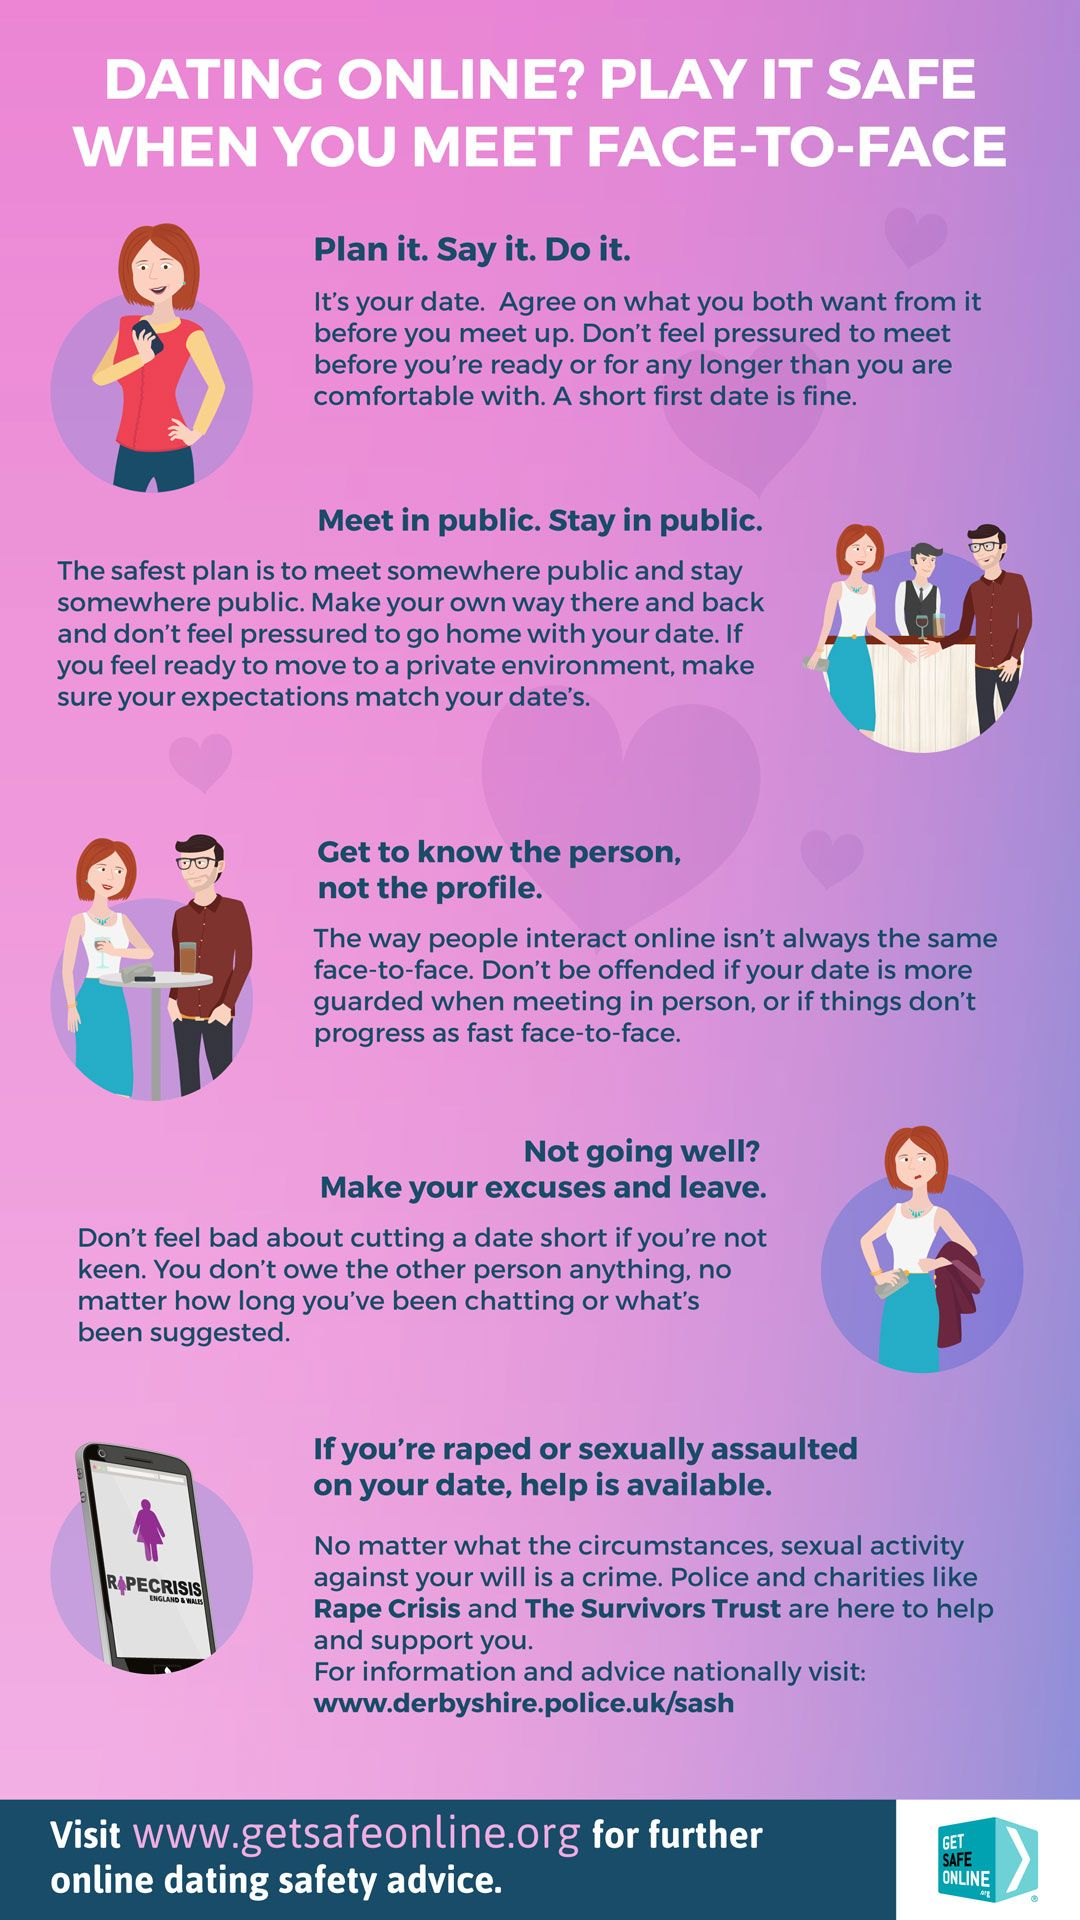 Ways To Make Online Dating Safe